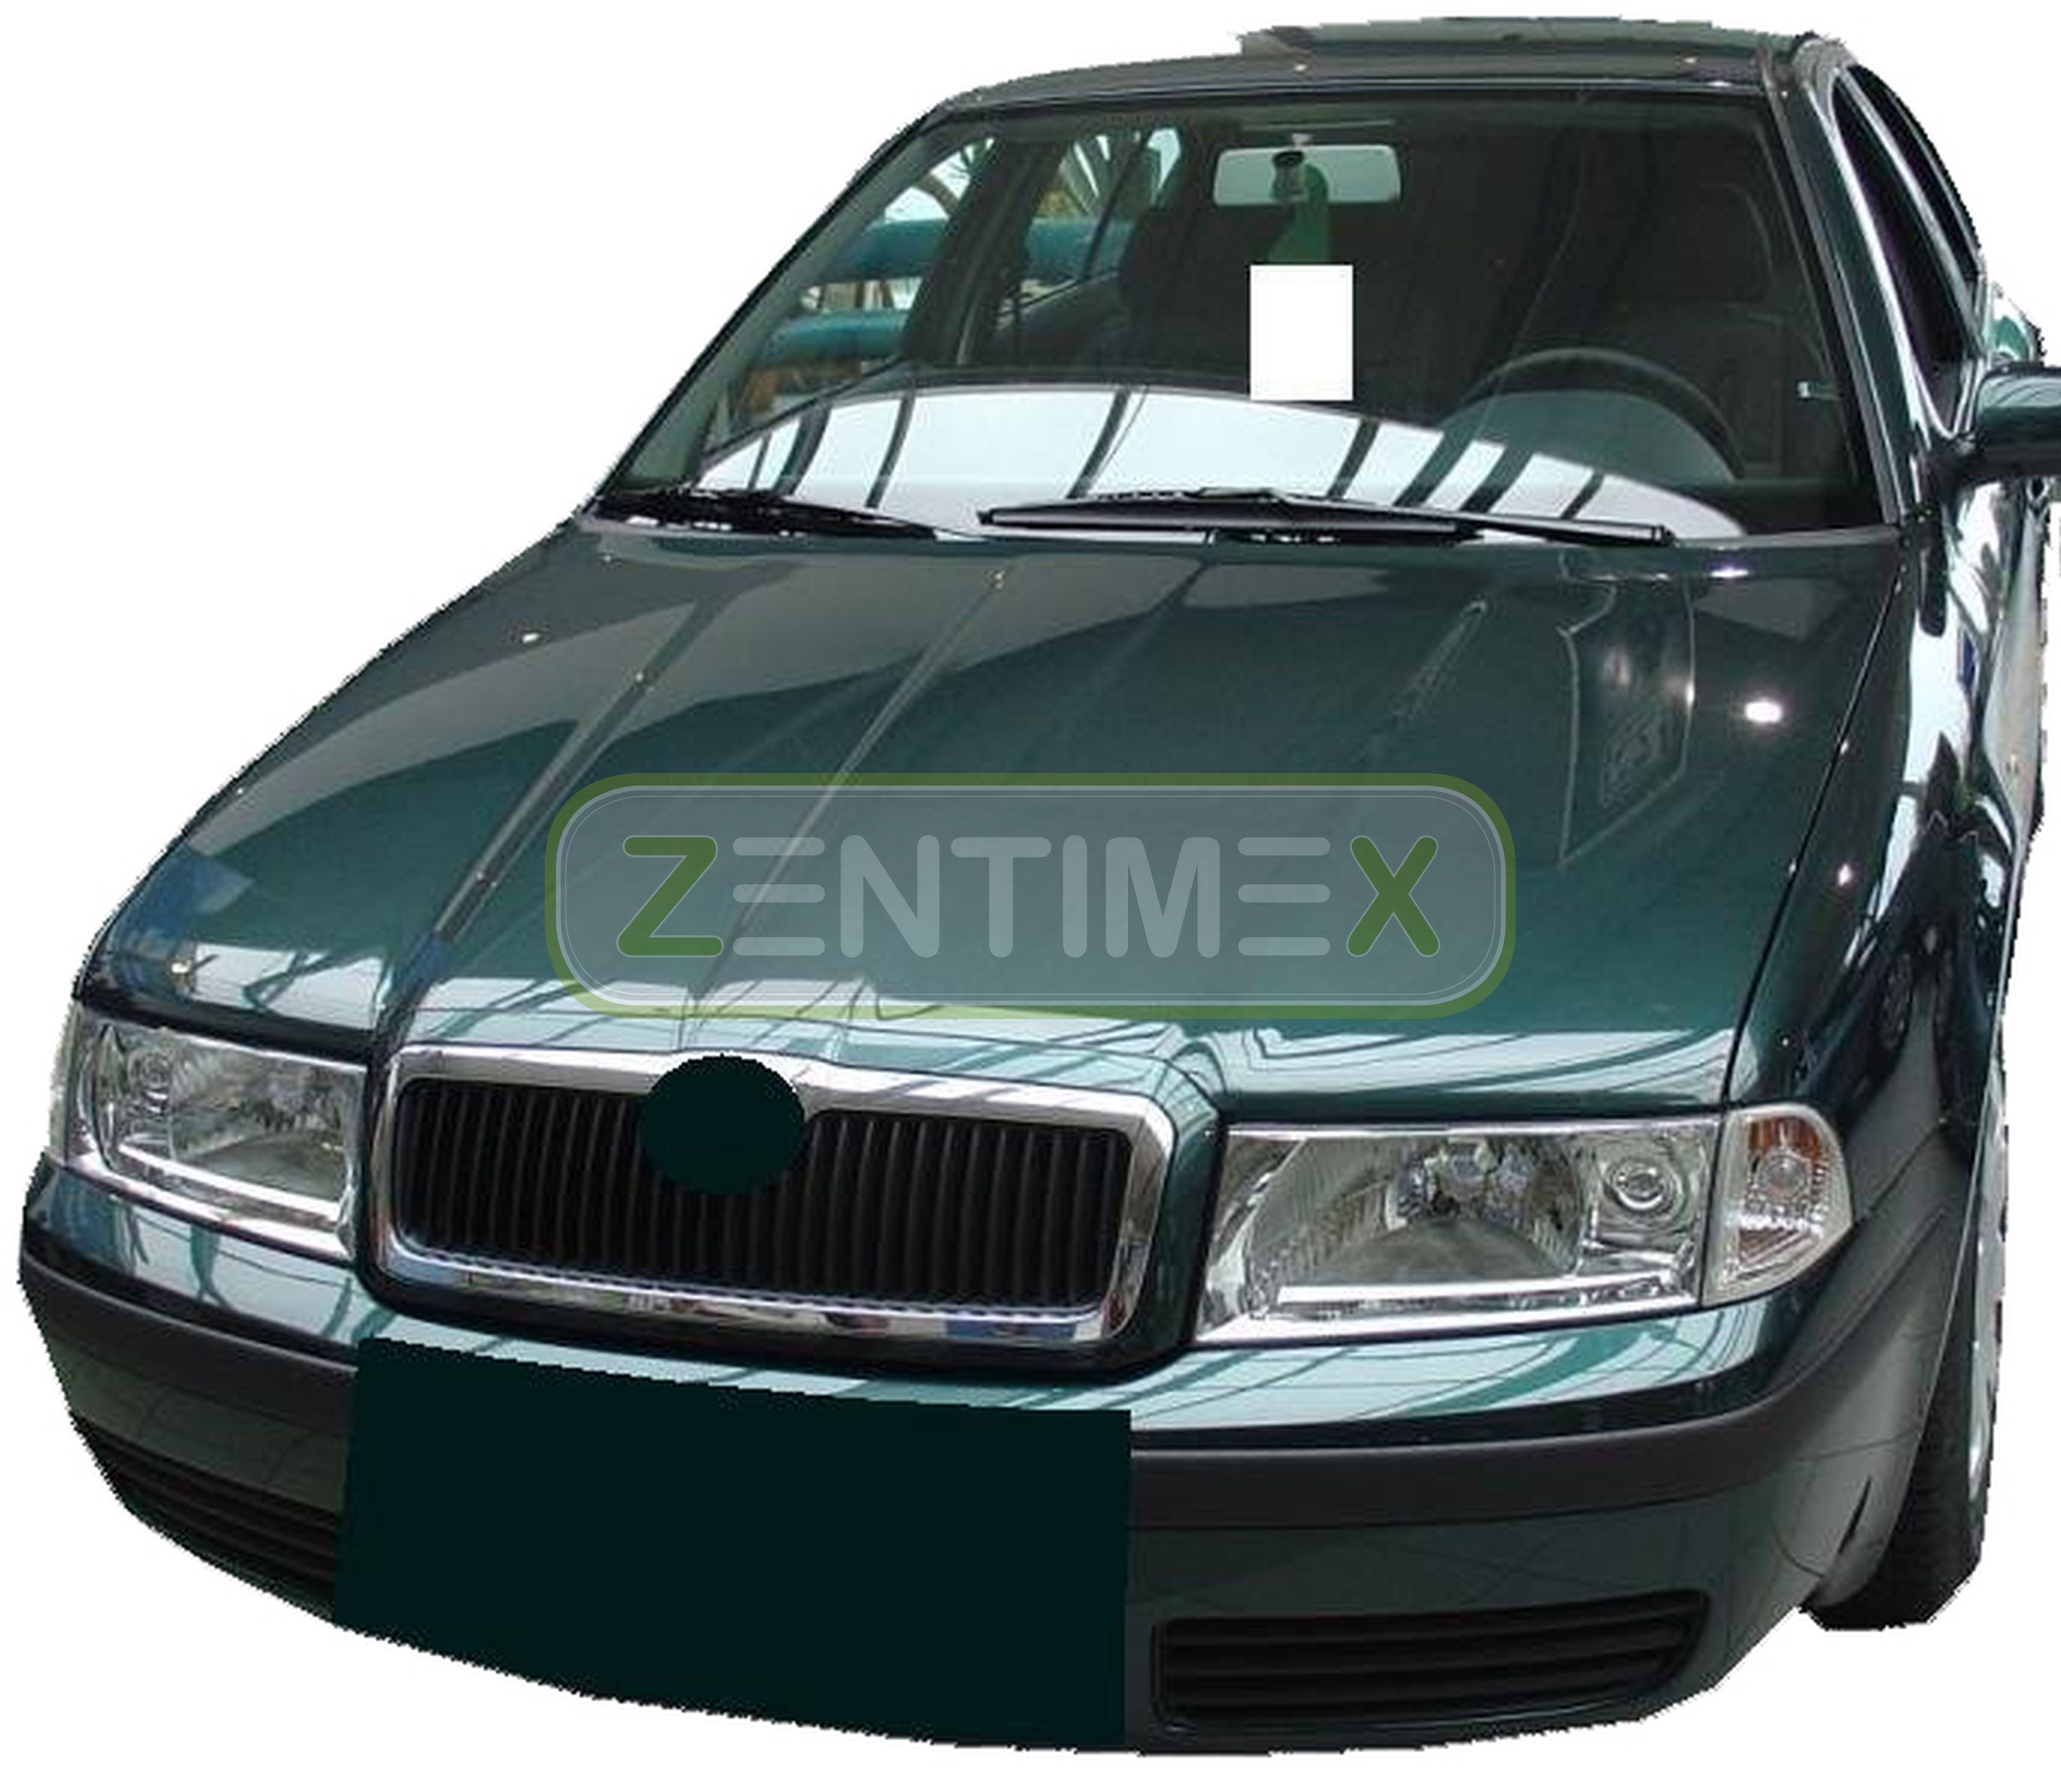 kofferraumwanne f r skoda octavia drive 1 1u hatchback. Black Bedroom Furniture Sets. Home Design Ideas